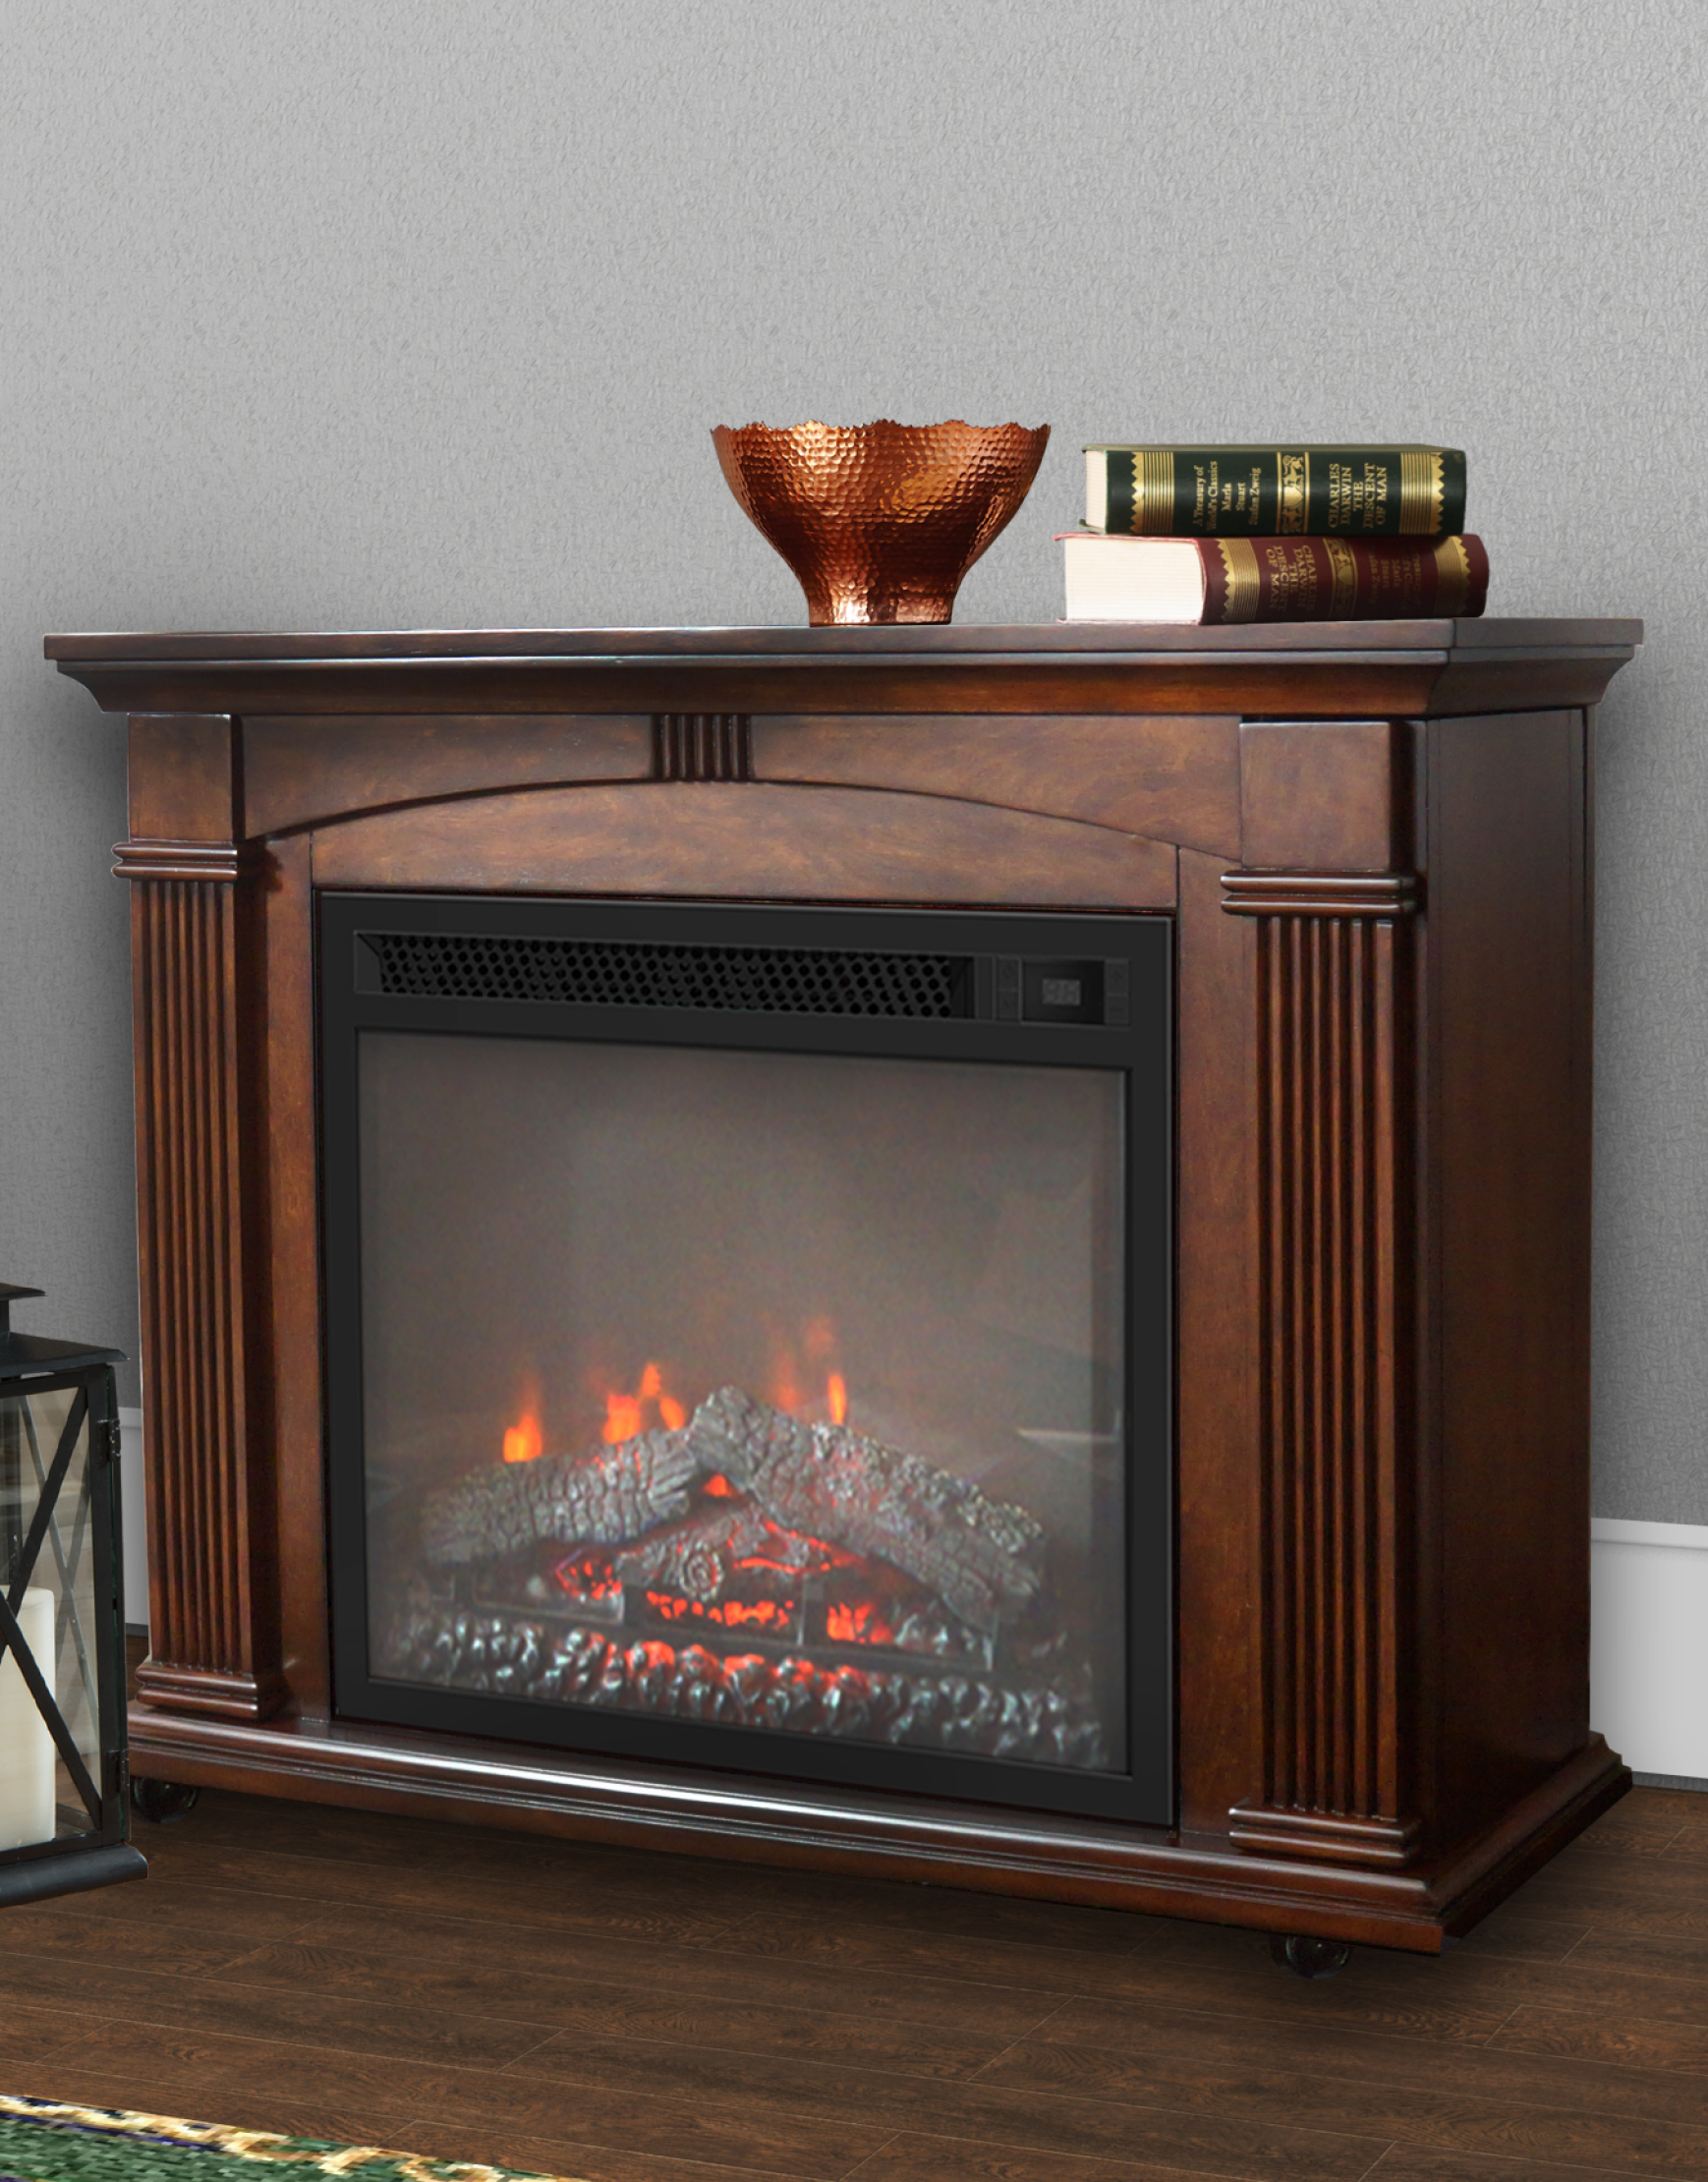 Cherry Fireplace Tv Stand Inspirational Prokonian 37 Inch Mantel Electric Fireplace In Cherry